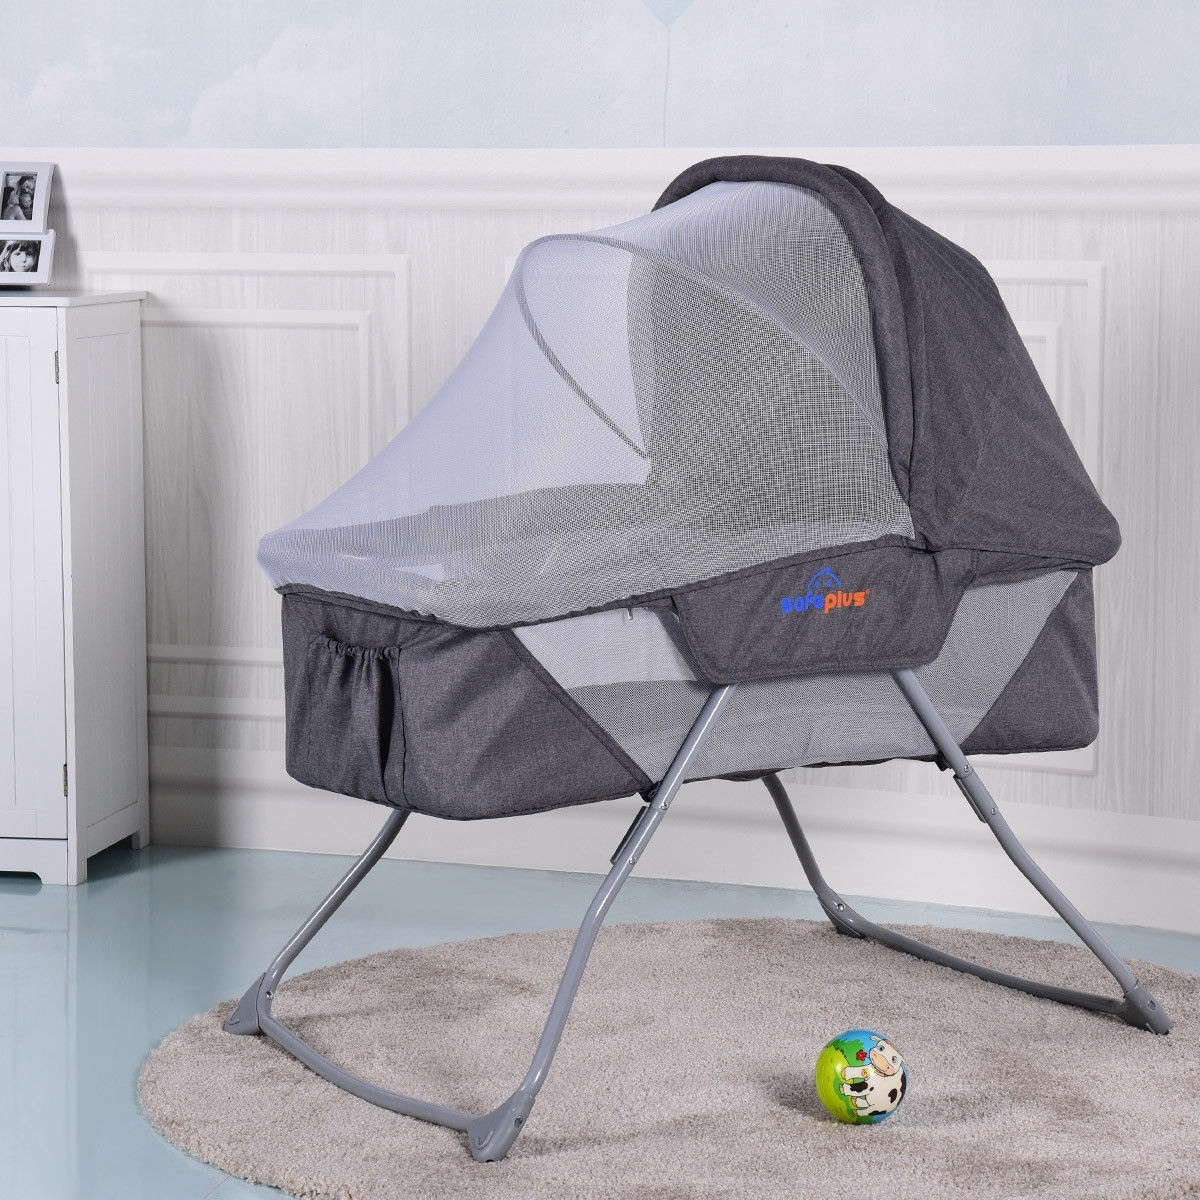 Shop Costway Lightweight Foldable Baby Bassinet Rocking Bed Canopy Mosquito Net Carrying Bag - Gray - Free Shipping Today - Overstock - 20489052 & Shop Costway Lightweight Foldable Baby Bassinet Rocking Bed Canopy ...